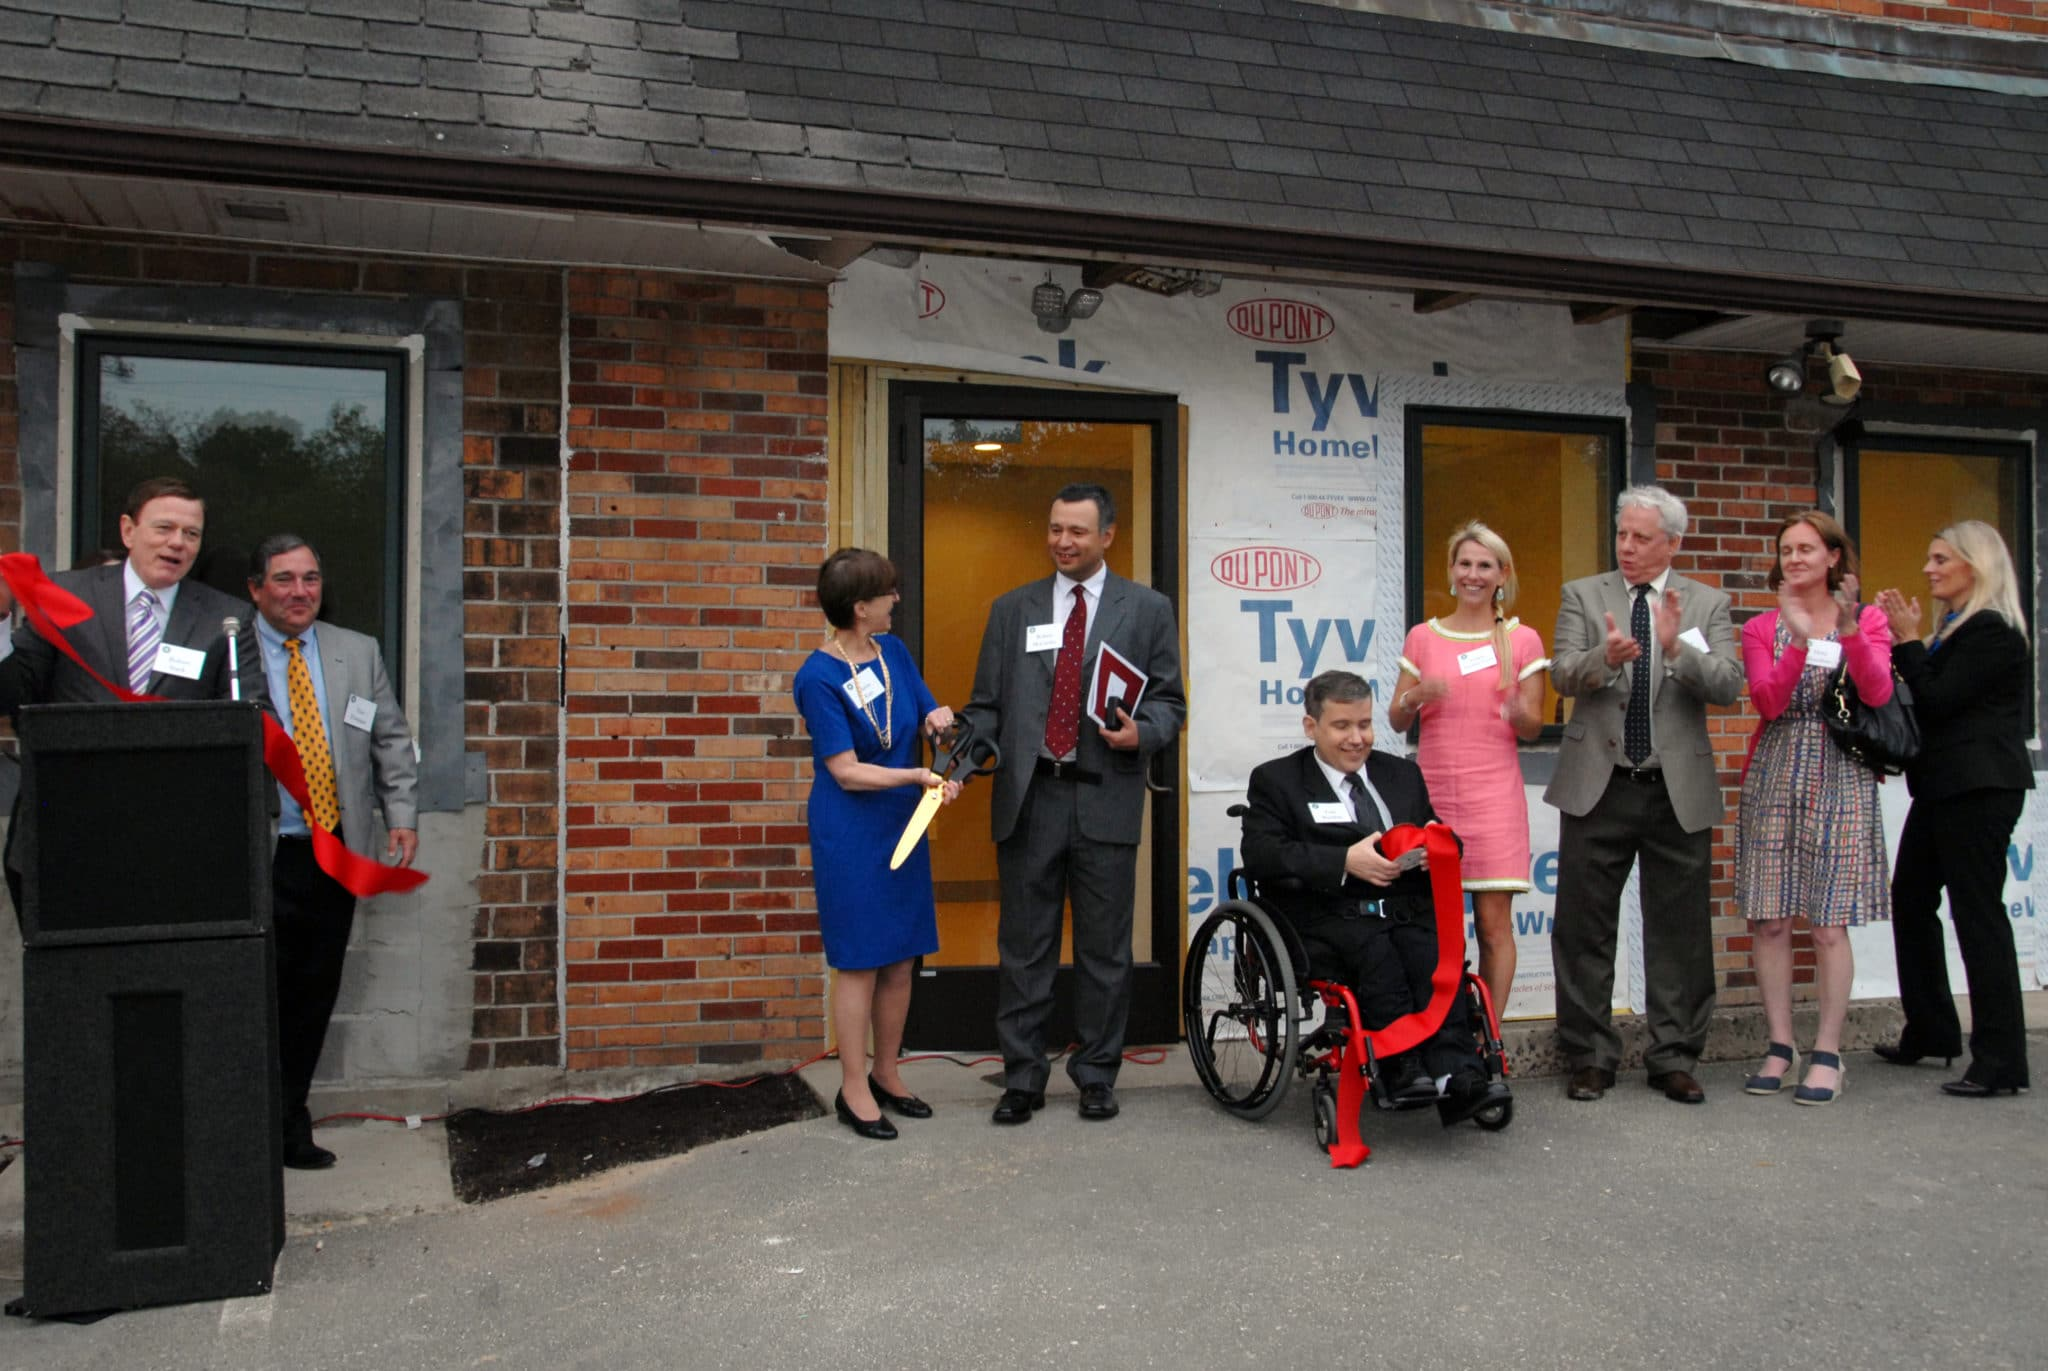 May 15, 2015, Elaine Katz, senior vice president of grants and communications for the Kessler Foundation, received the Betty Pendler Award from Community Options Inc. at the Daily Plan It – Farber Rd – Ribbon Cutting ceremony.